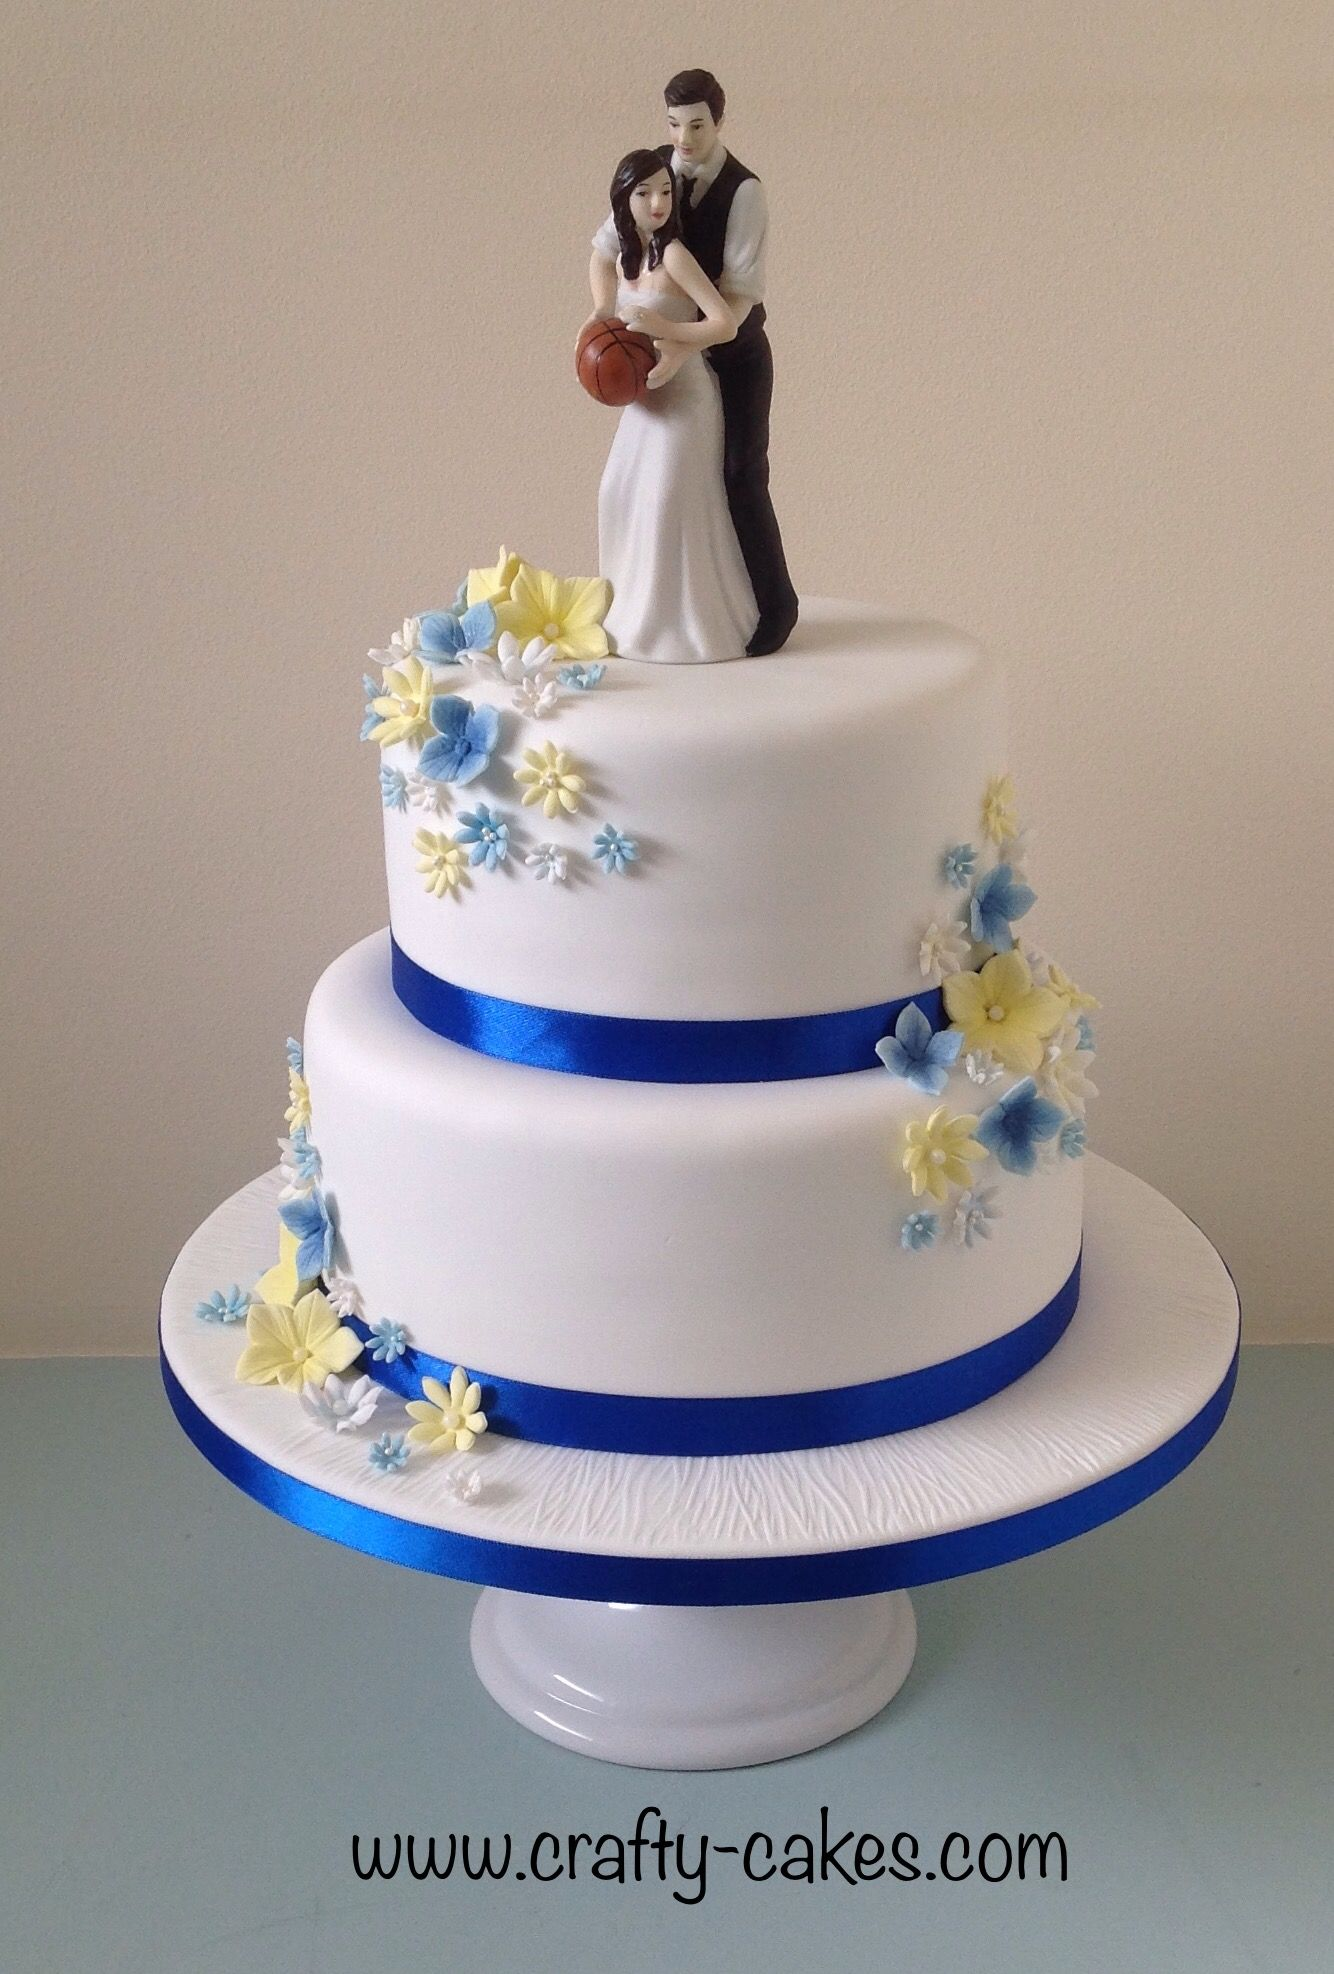 2 Tier Wedding Cake Basketball Topper With Royal Blue Yellow Flowers Royal Blue Wedding Cakes Wedding Cakes Blue Tiered Wedding Cake